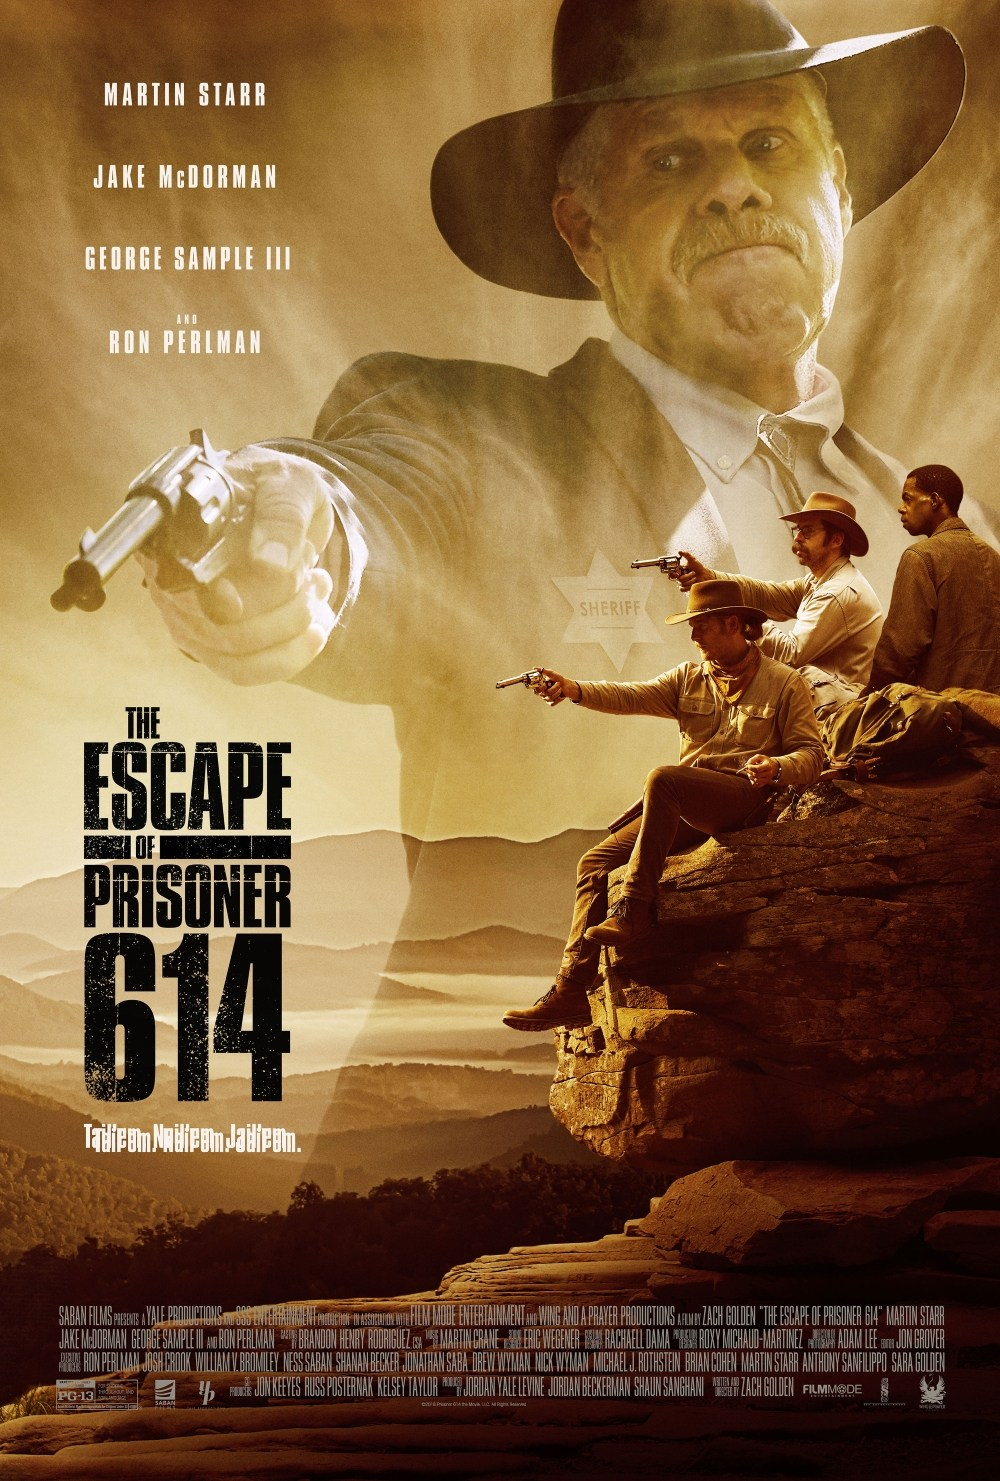 The-Escape-of-Prisoner-614-movie-poster.jpg